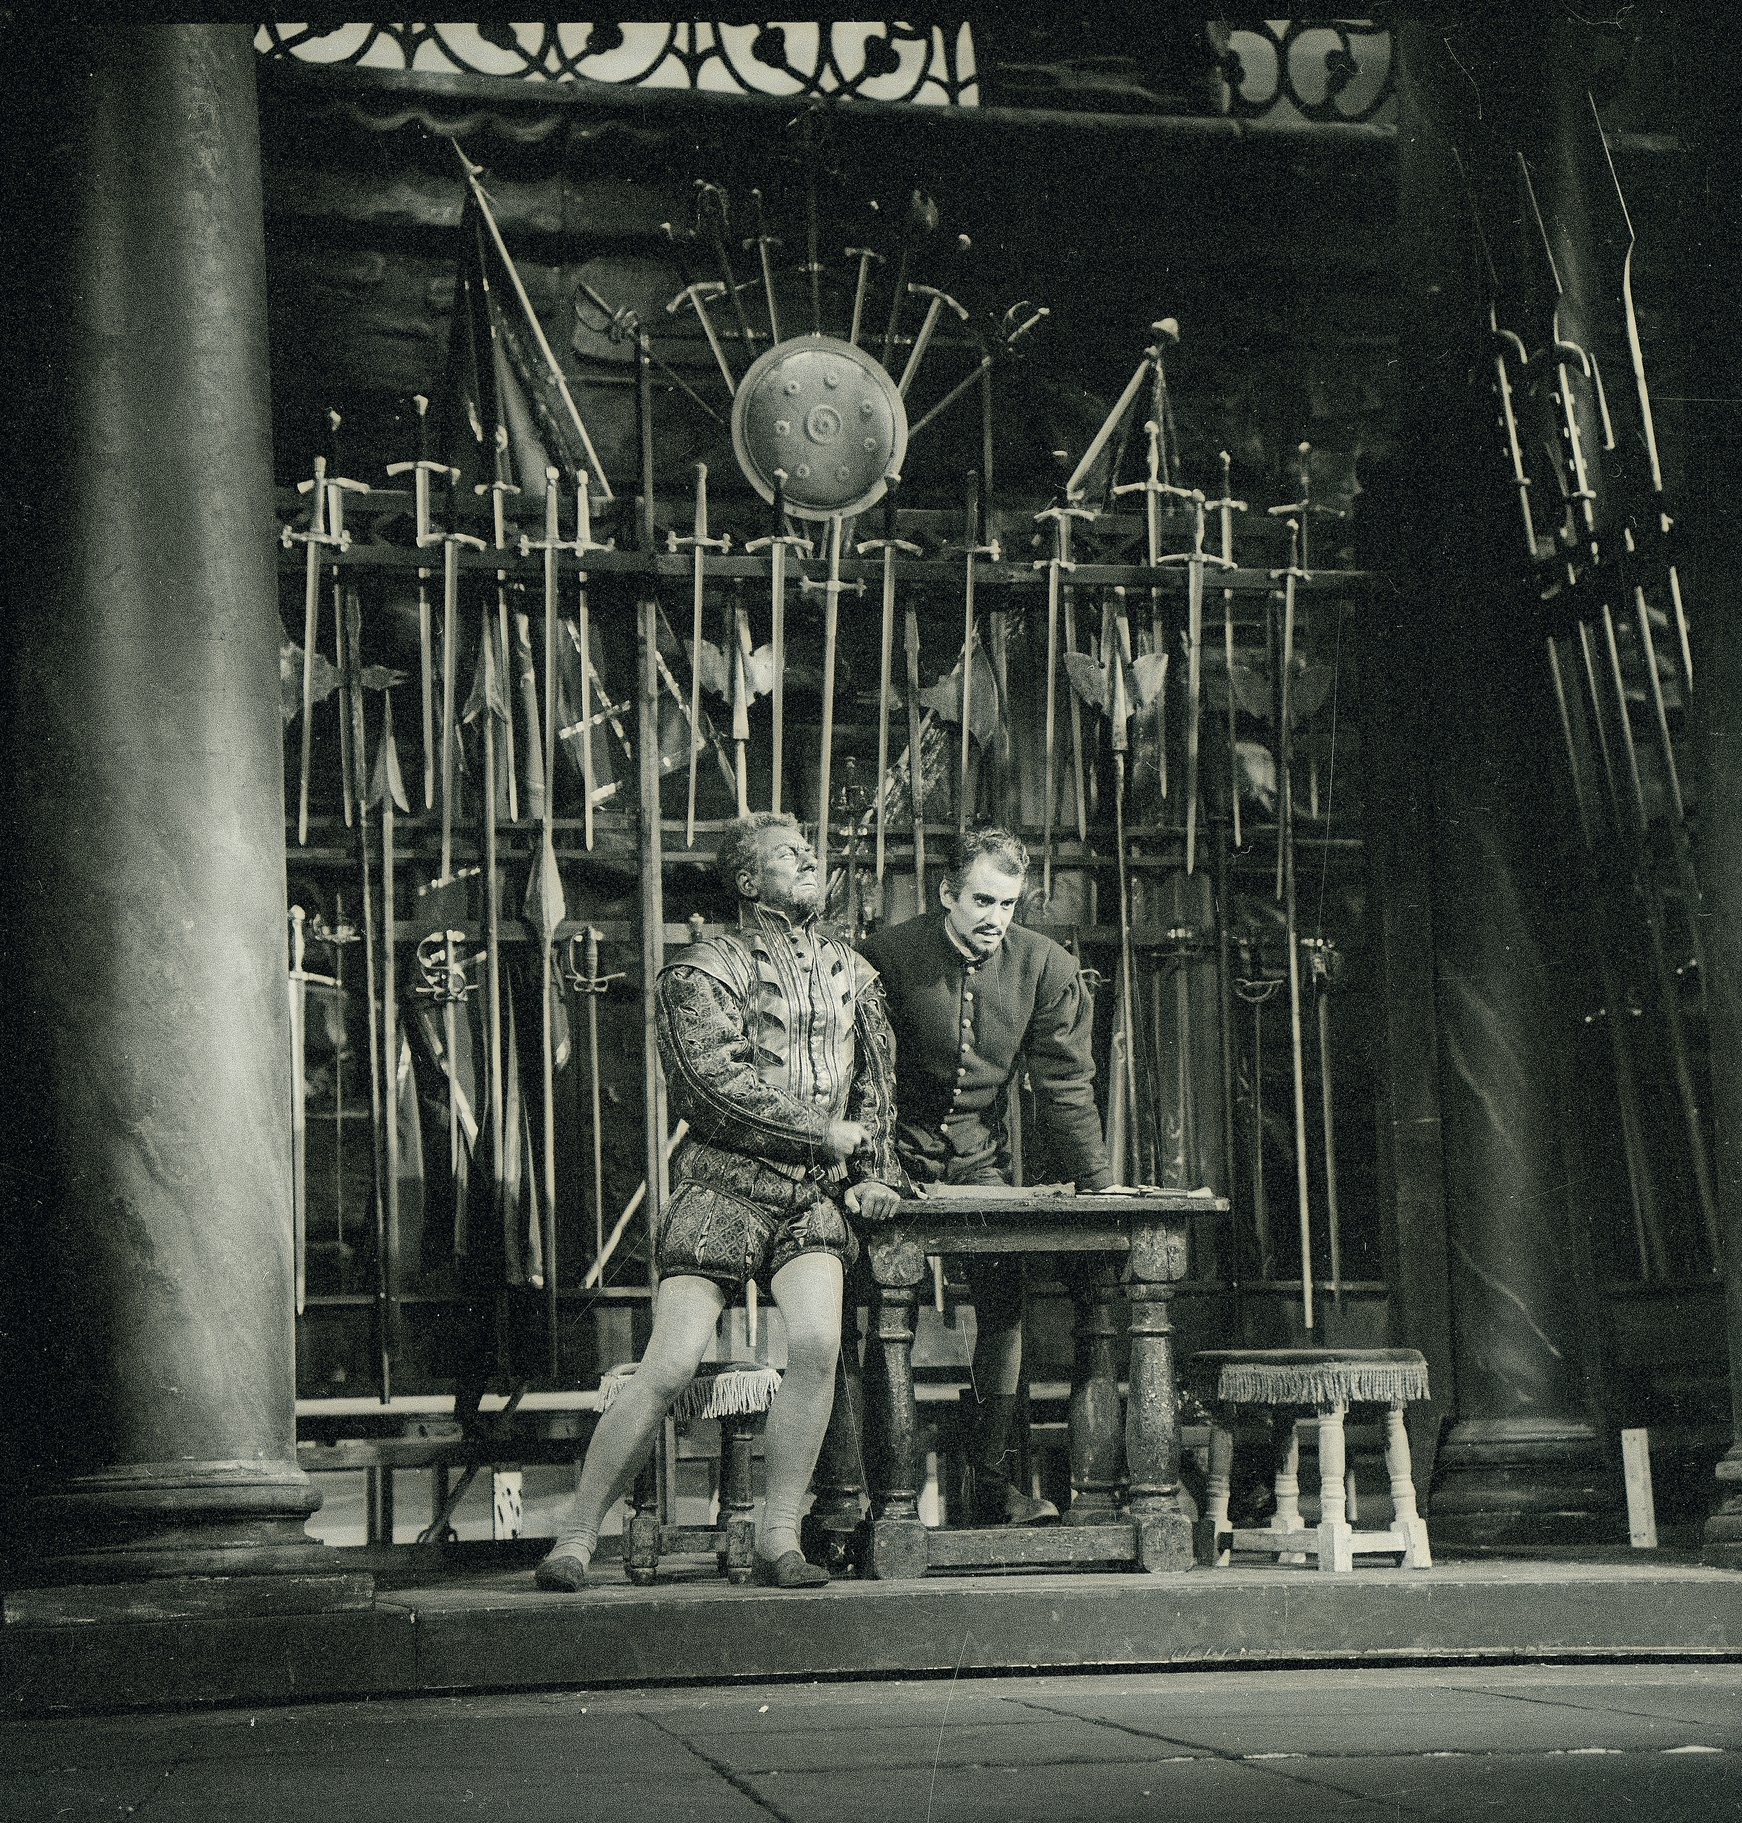 Othello and Iago in front of a rack of swords.